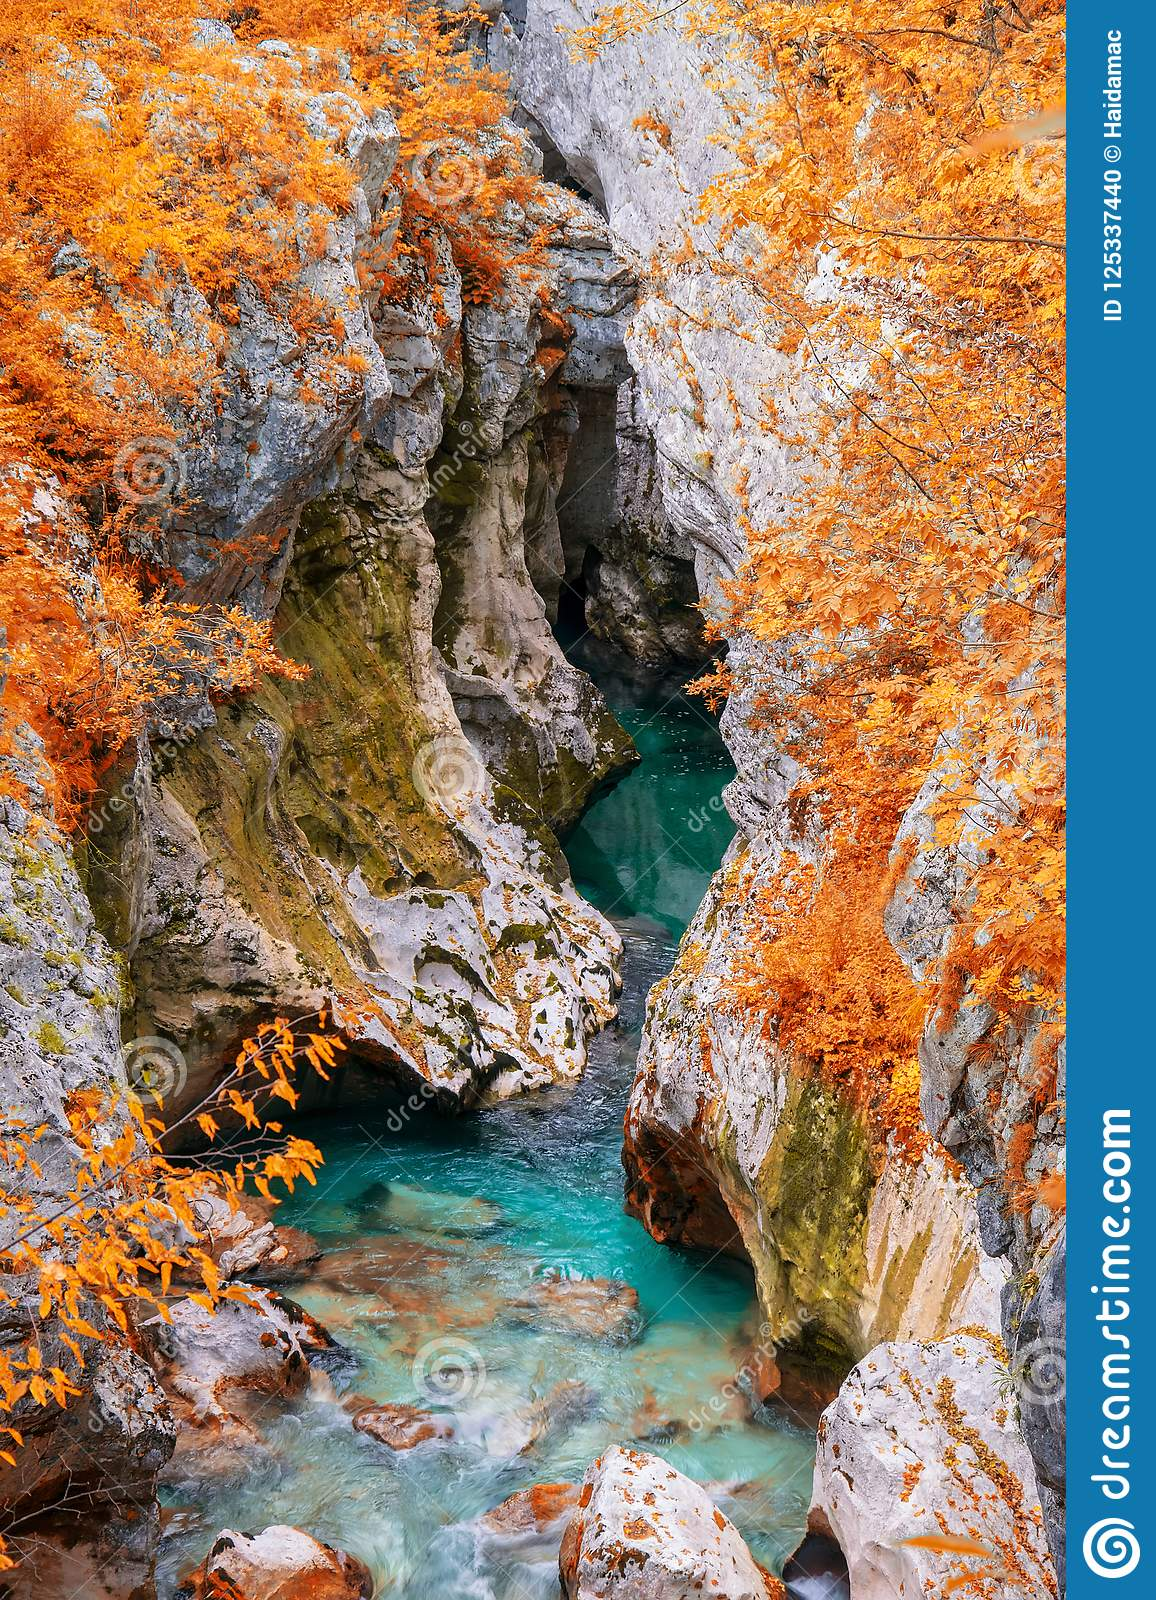 Scenic view of Great Canyon of Soca river near Bovec, Slovenia at autumn day